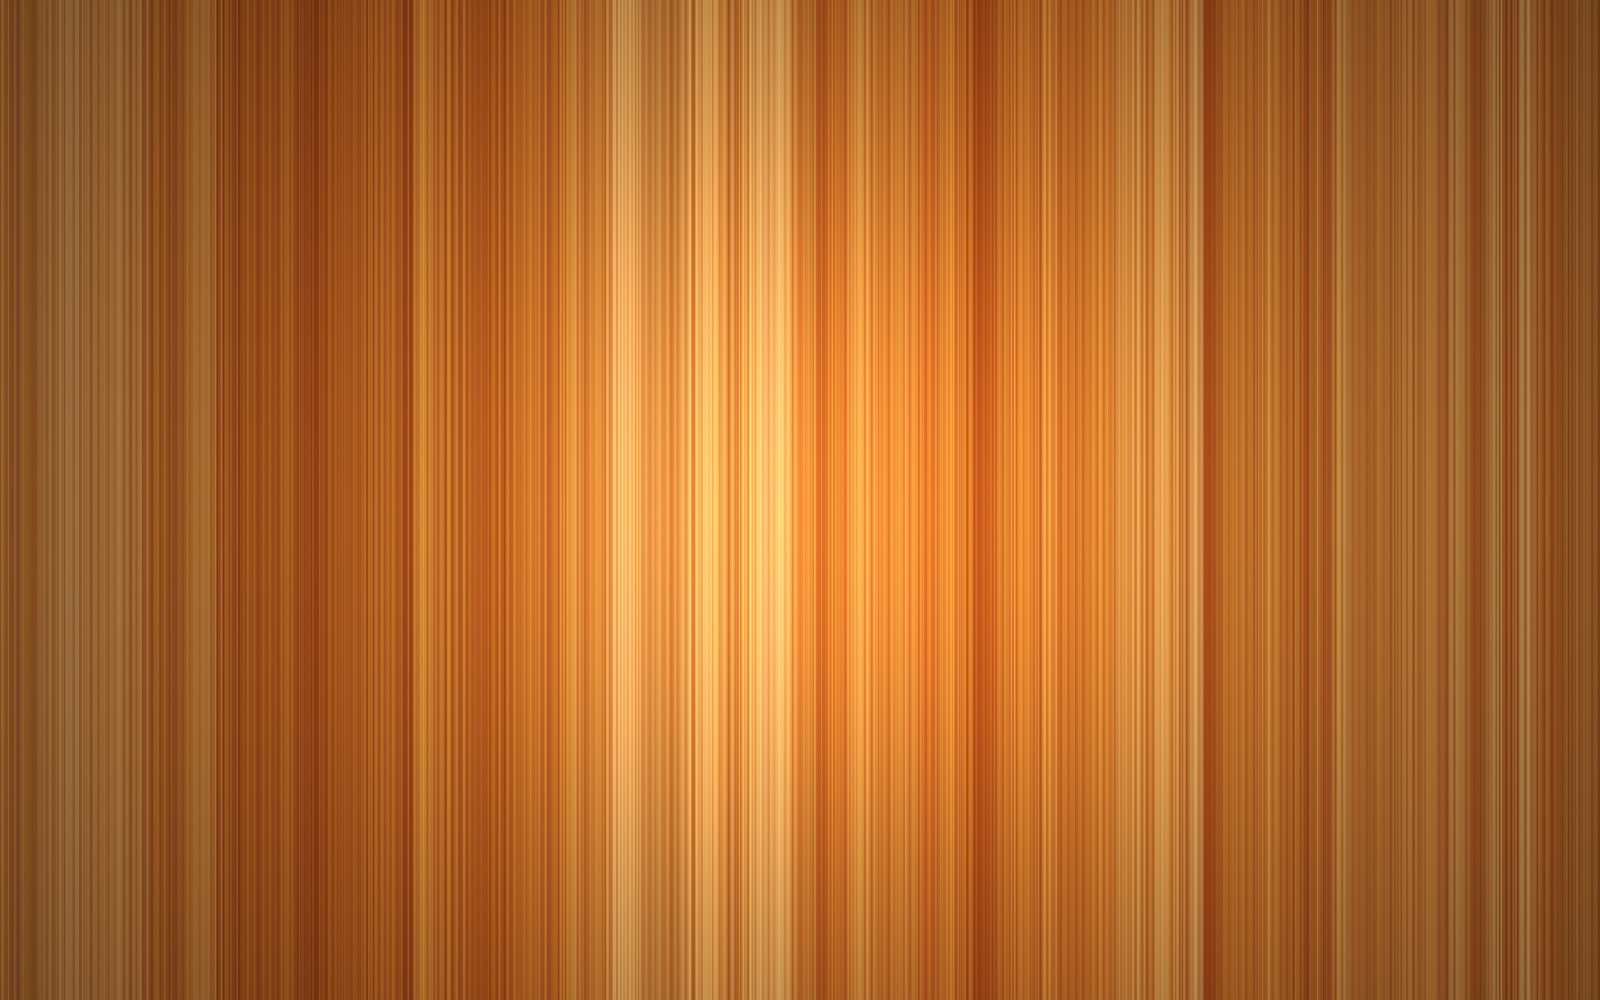 Full HD Wallpapers Backgrounds Wood Lines Orange 1600x1000